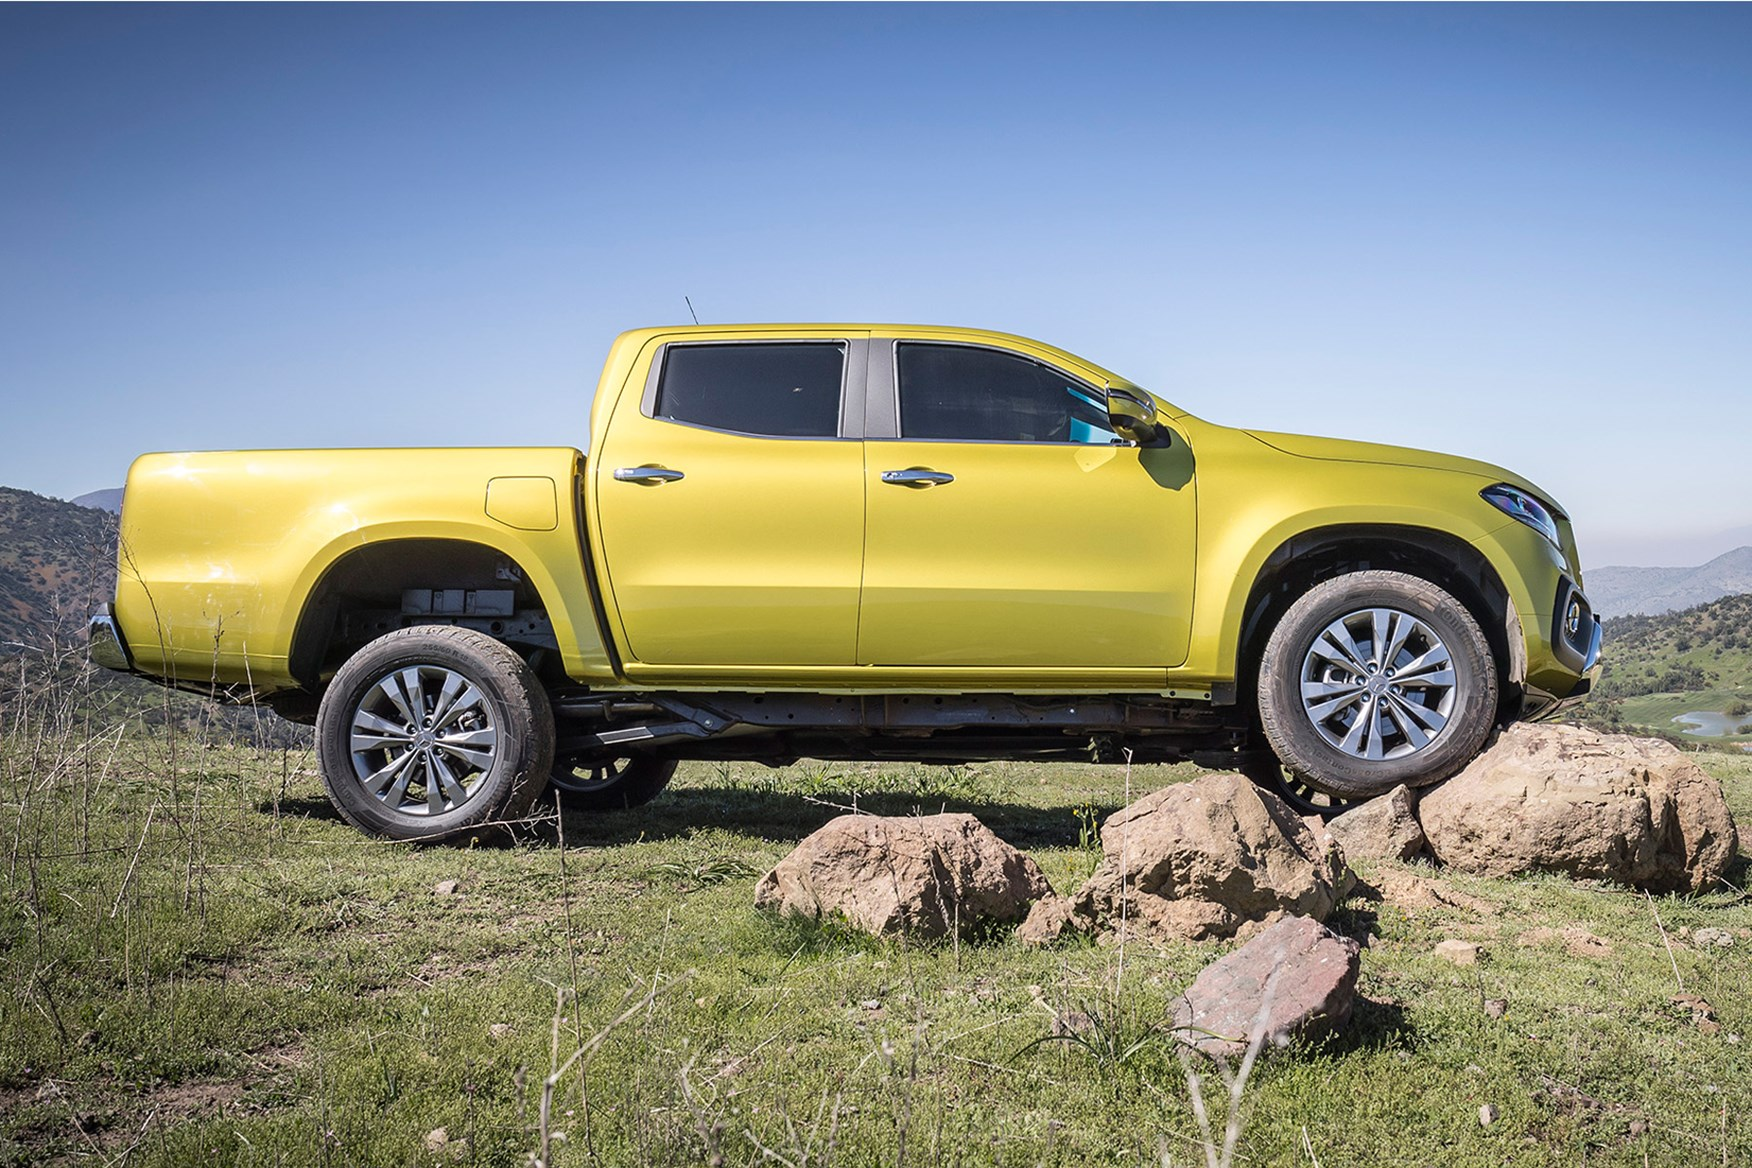 Mercedes-Benz X-Class full review on Parkers Vans - side exterior